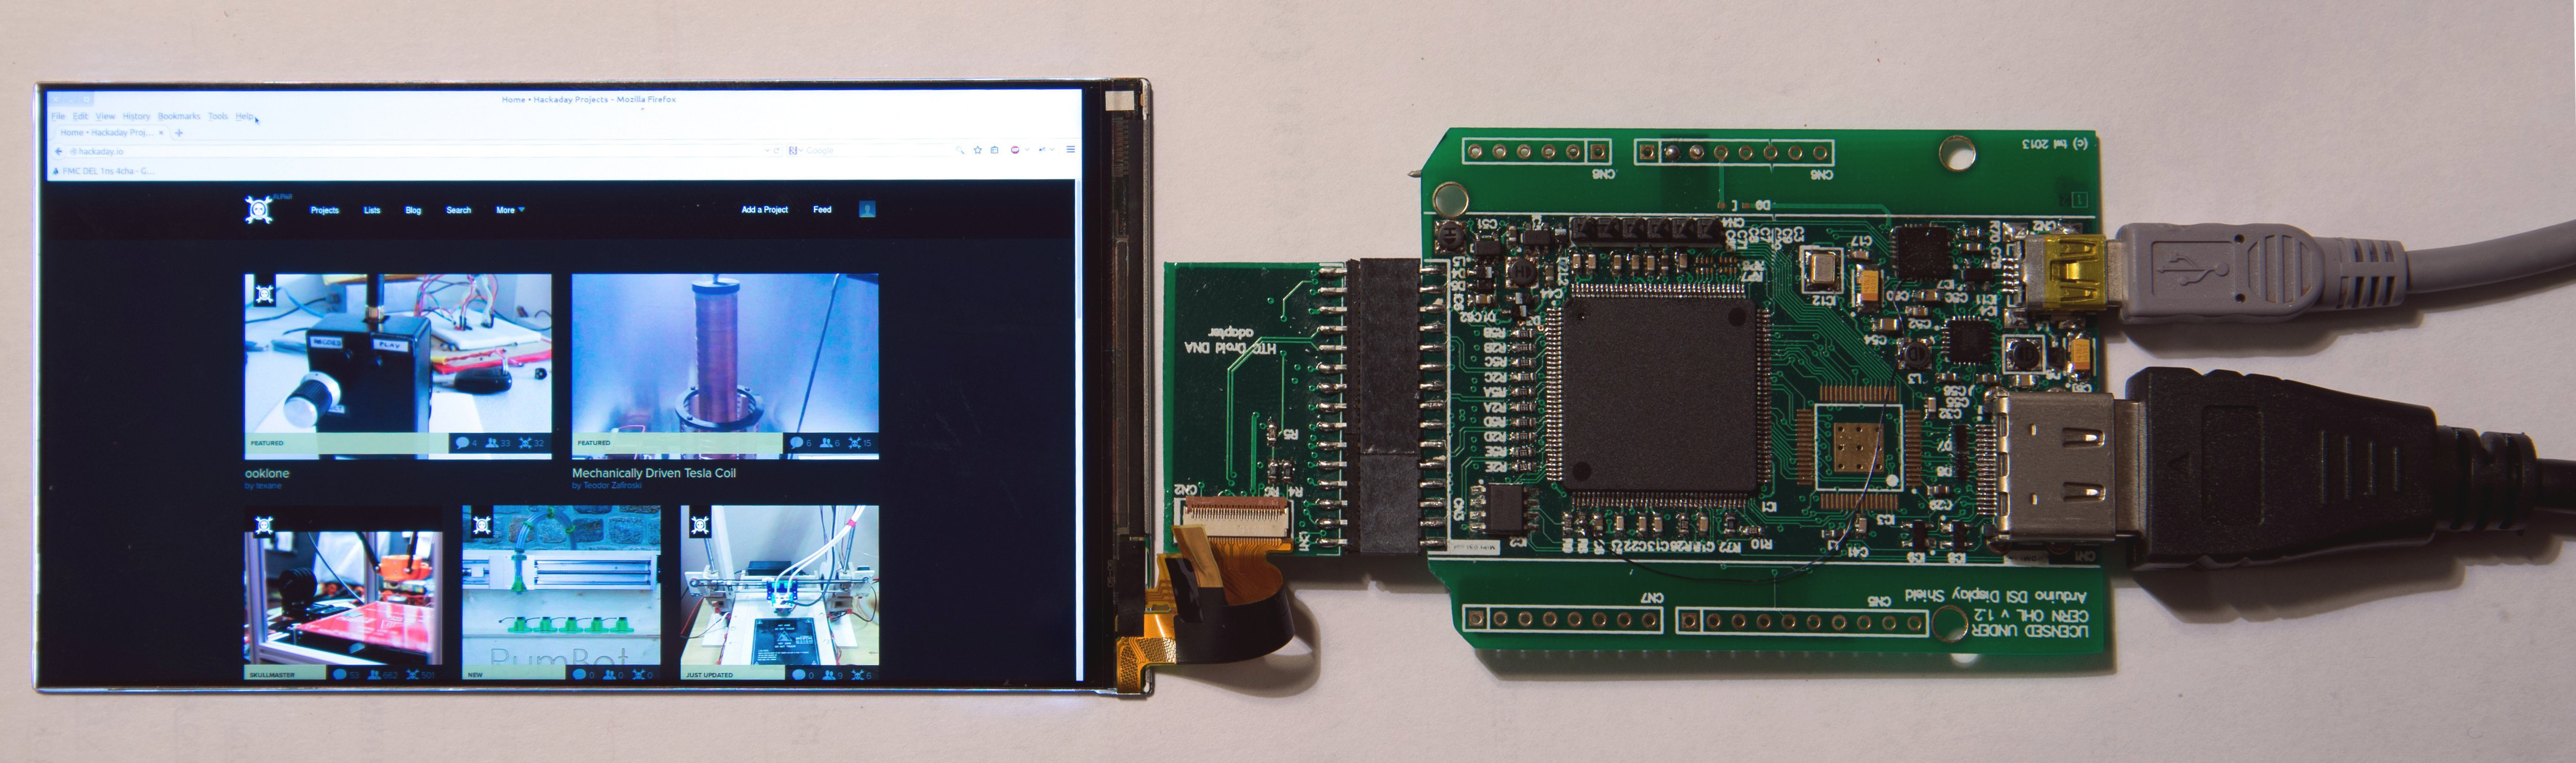 Gallery Mipi Dsi Display Shield Hdmi Adapter Hackaday Io